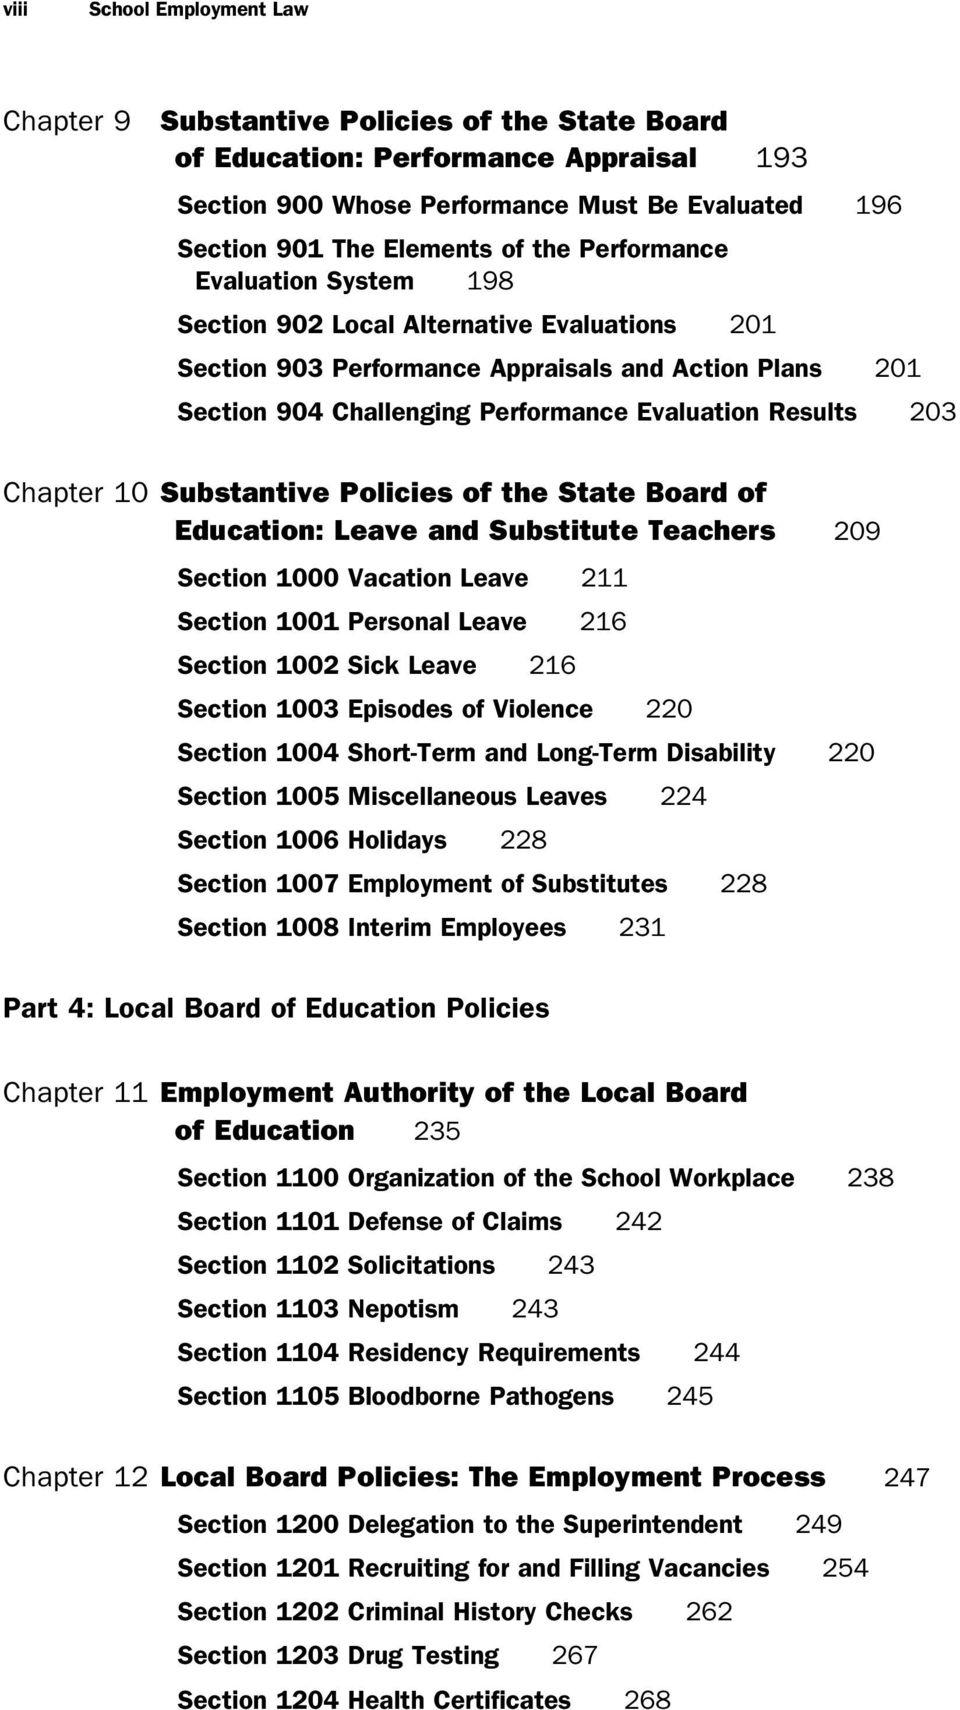 Chapter 10 Substantive Policies of the State Board of Education: Leave and Substitute Teachers 209 Section 1000 Vacation Leave 211 Section 1001 Personal Leave 216 Section 1002 Sick Leave 216 Section